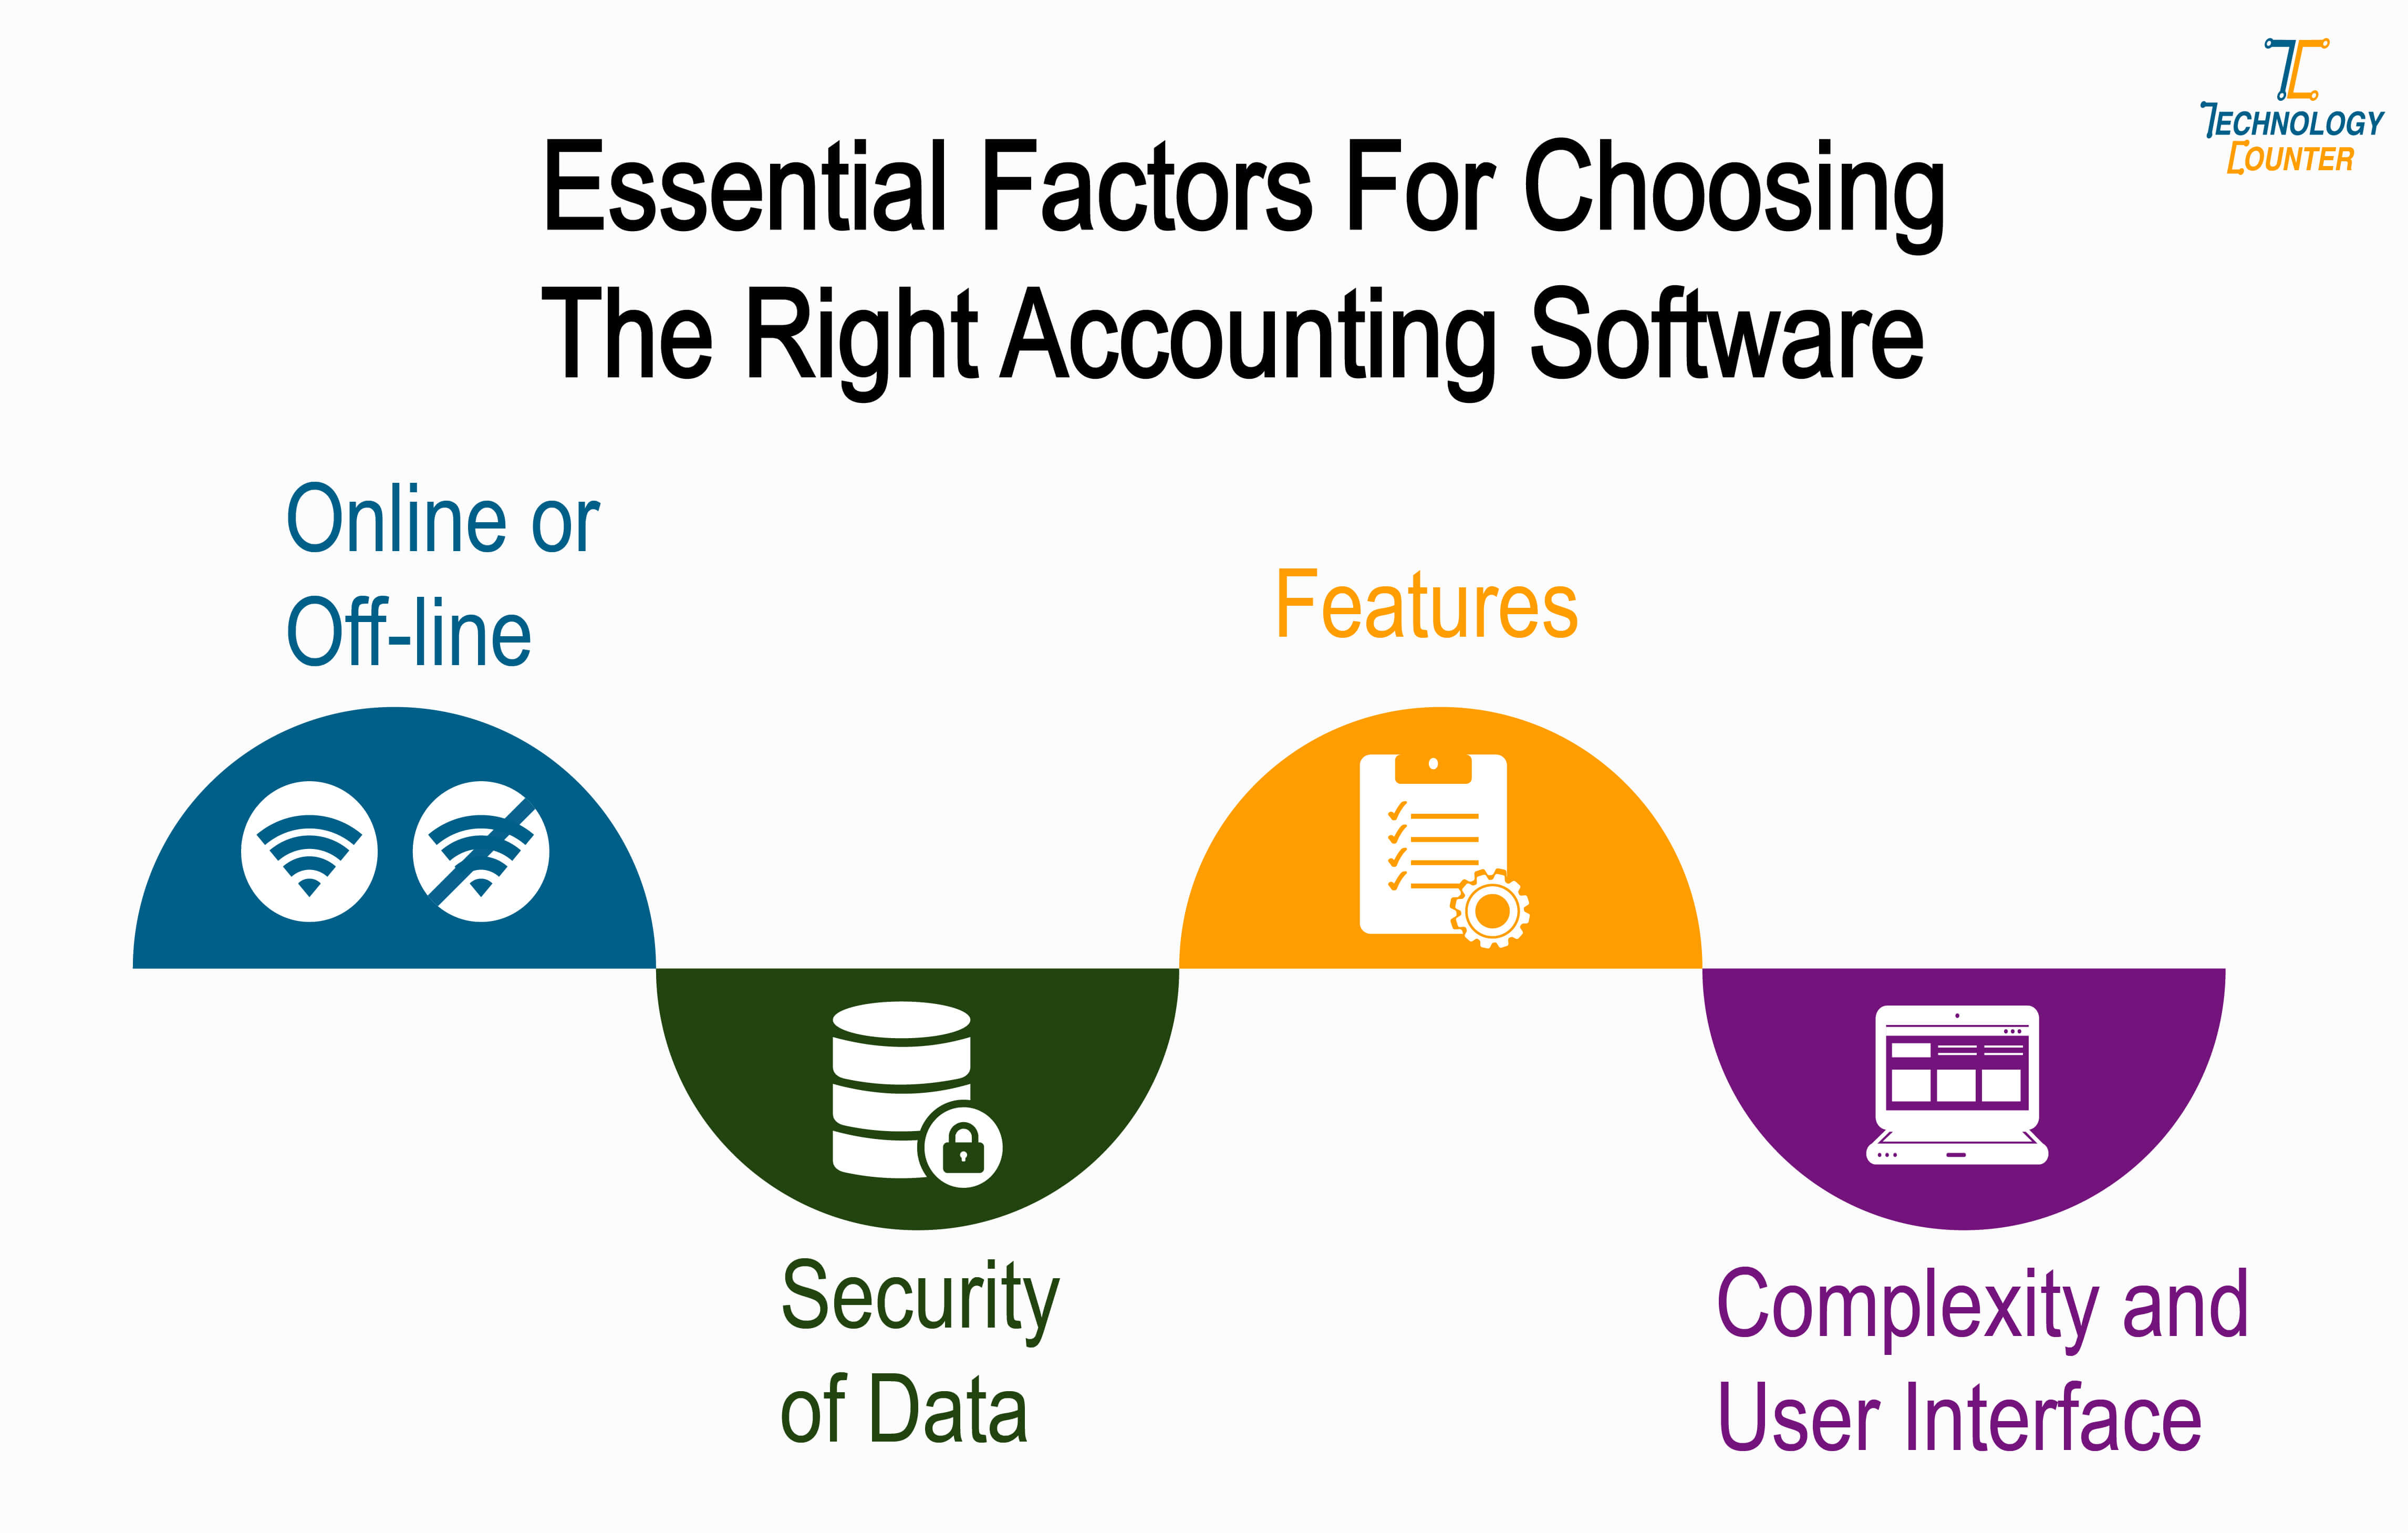 Essential Factors For Choosing the Right Accounting Software